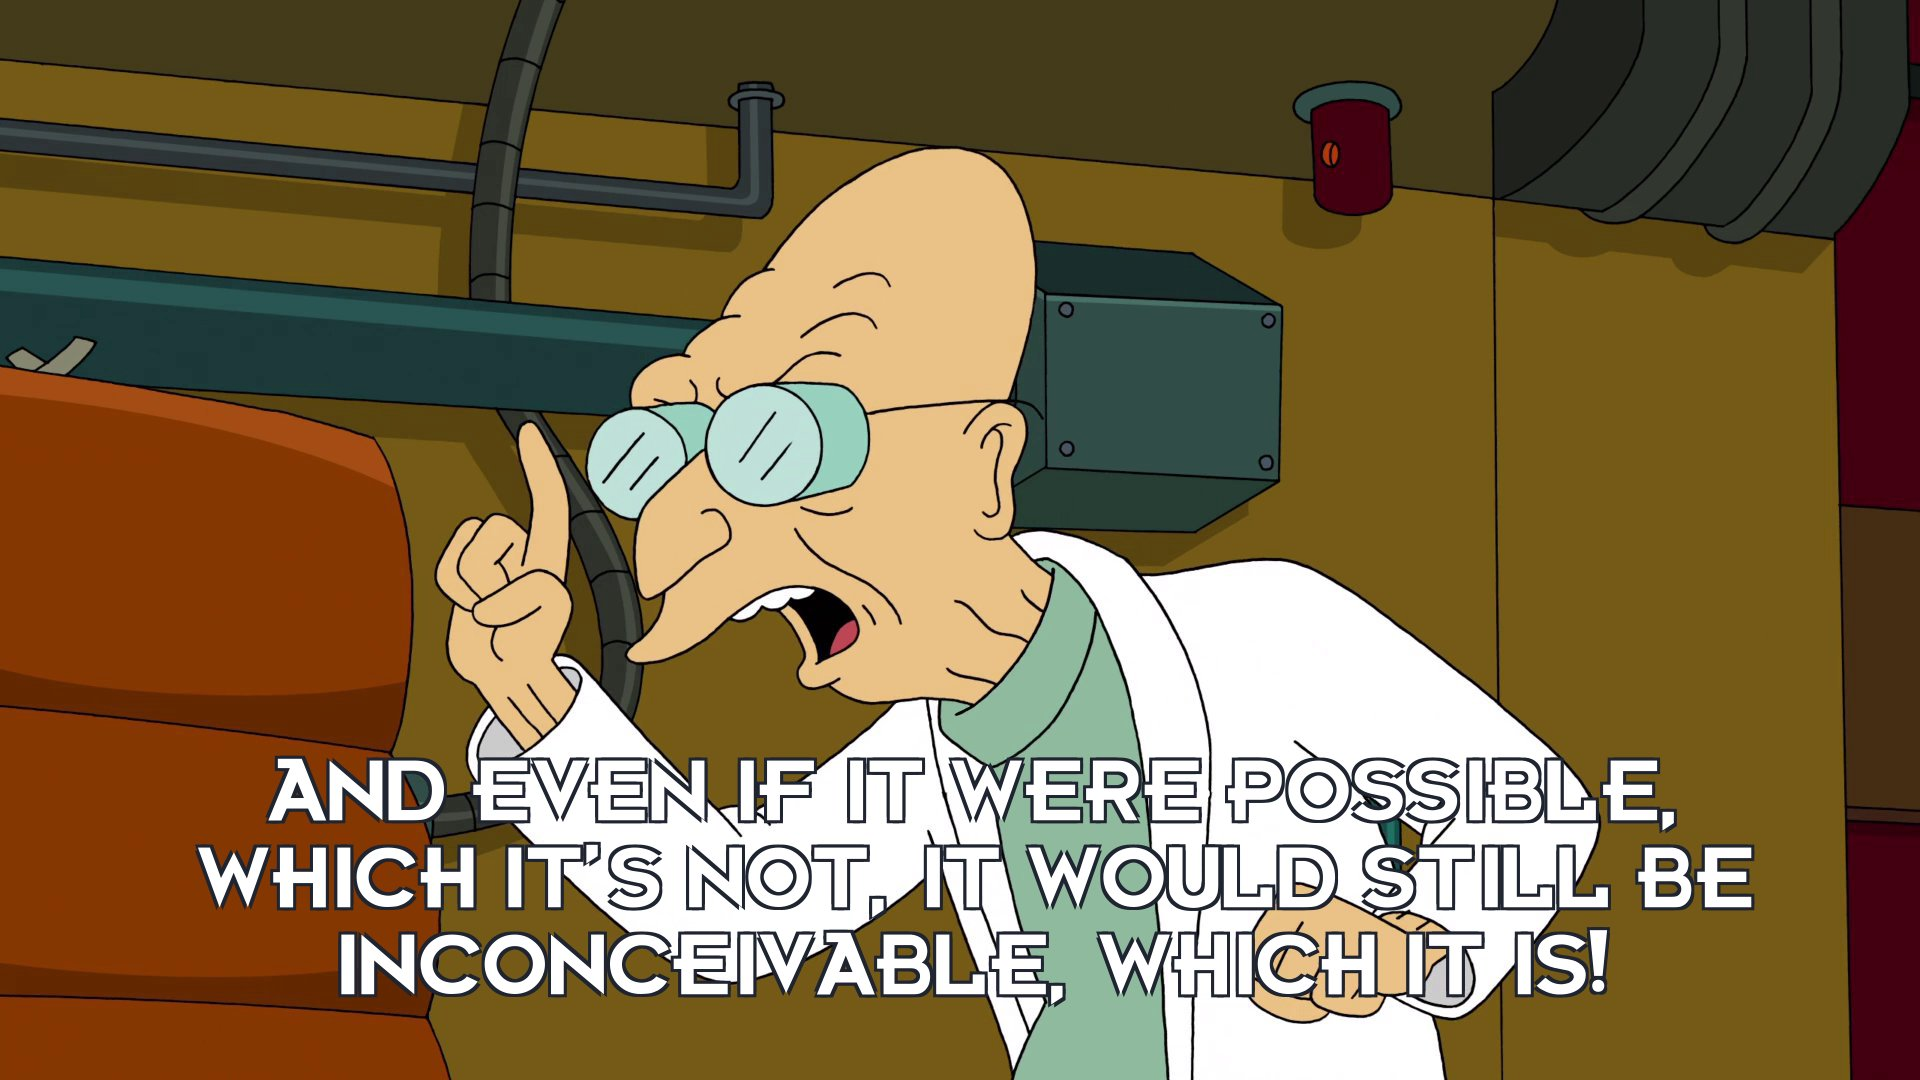 Prof Hubert J Farnsworth: And even if it were possible, which it's not, it would still be inconceivable, which it is!